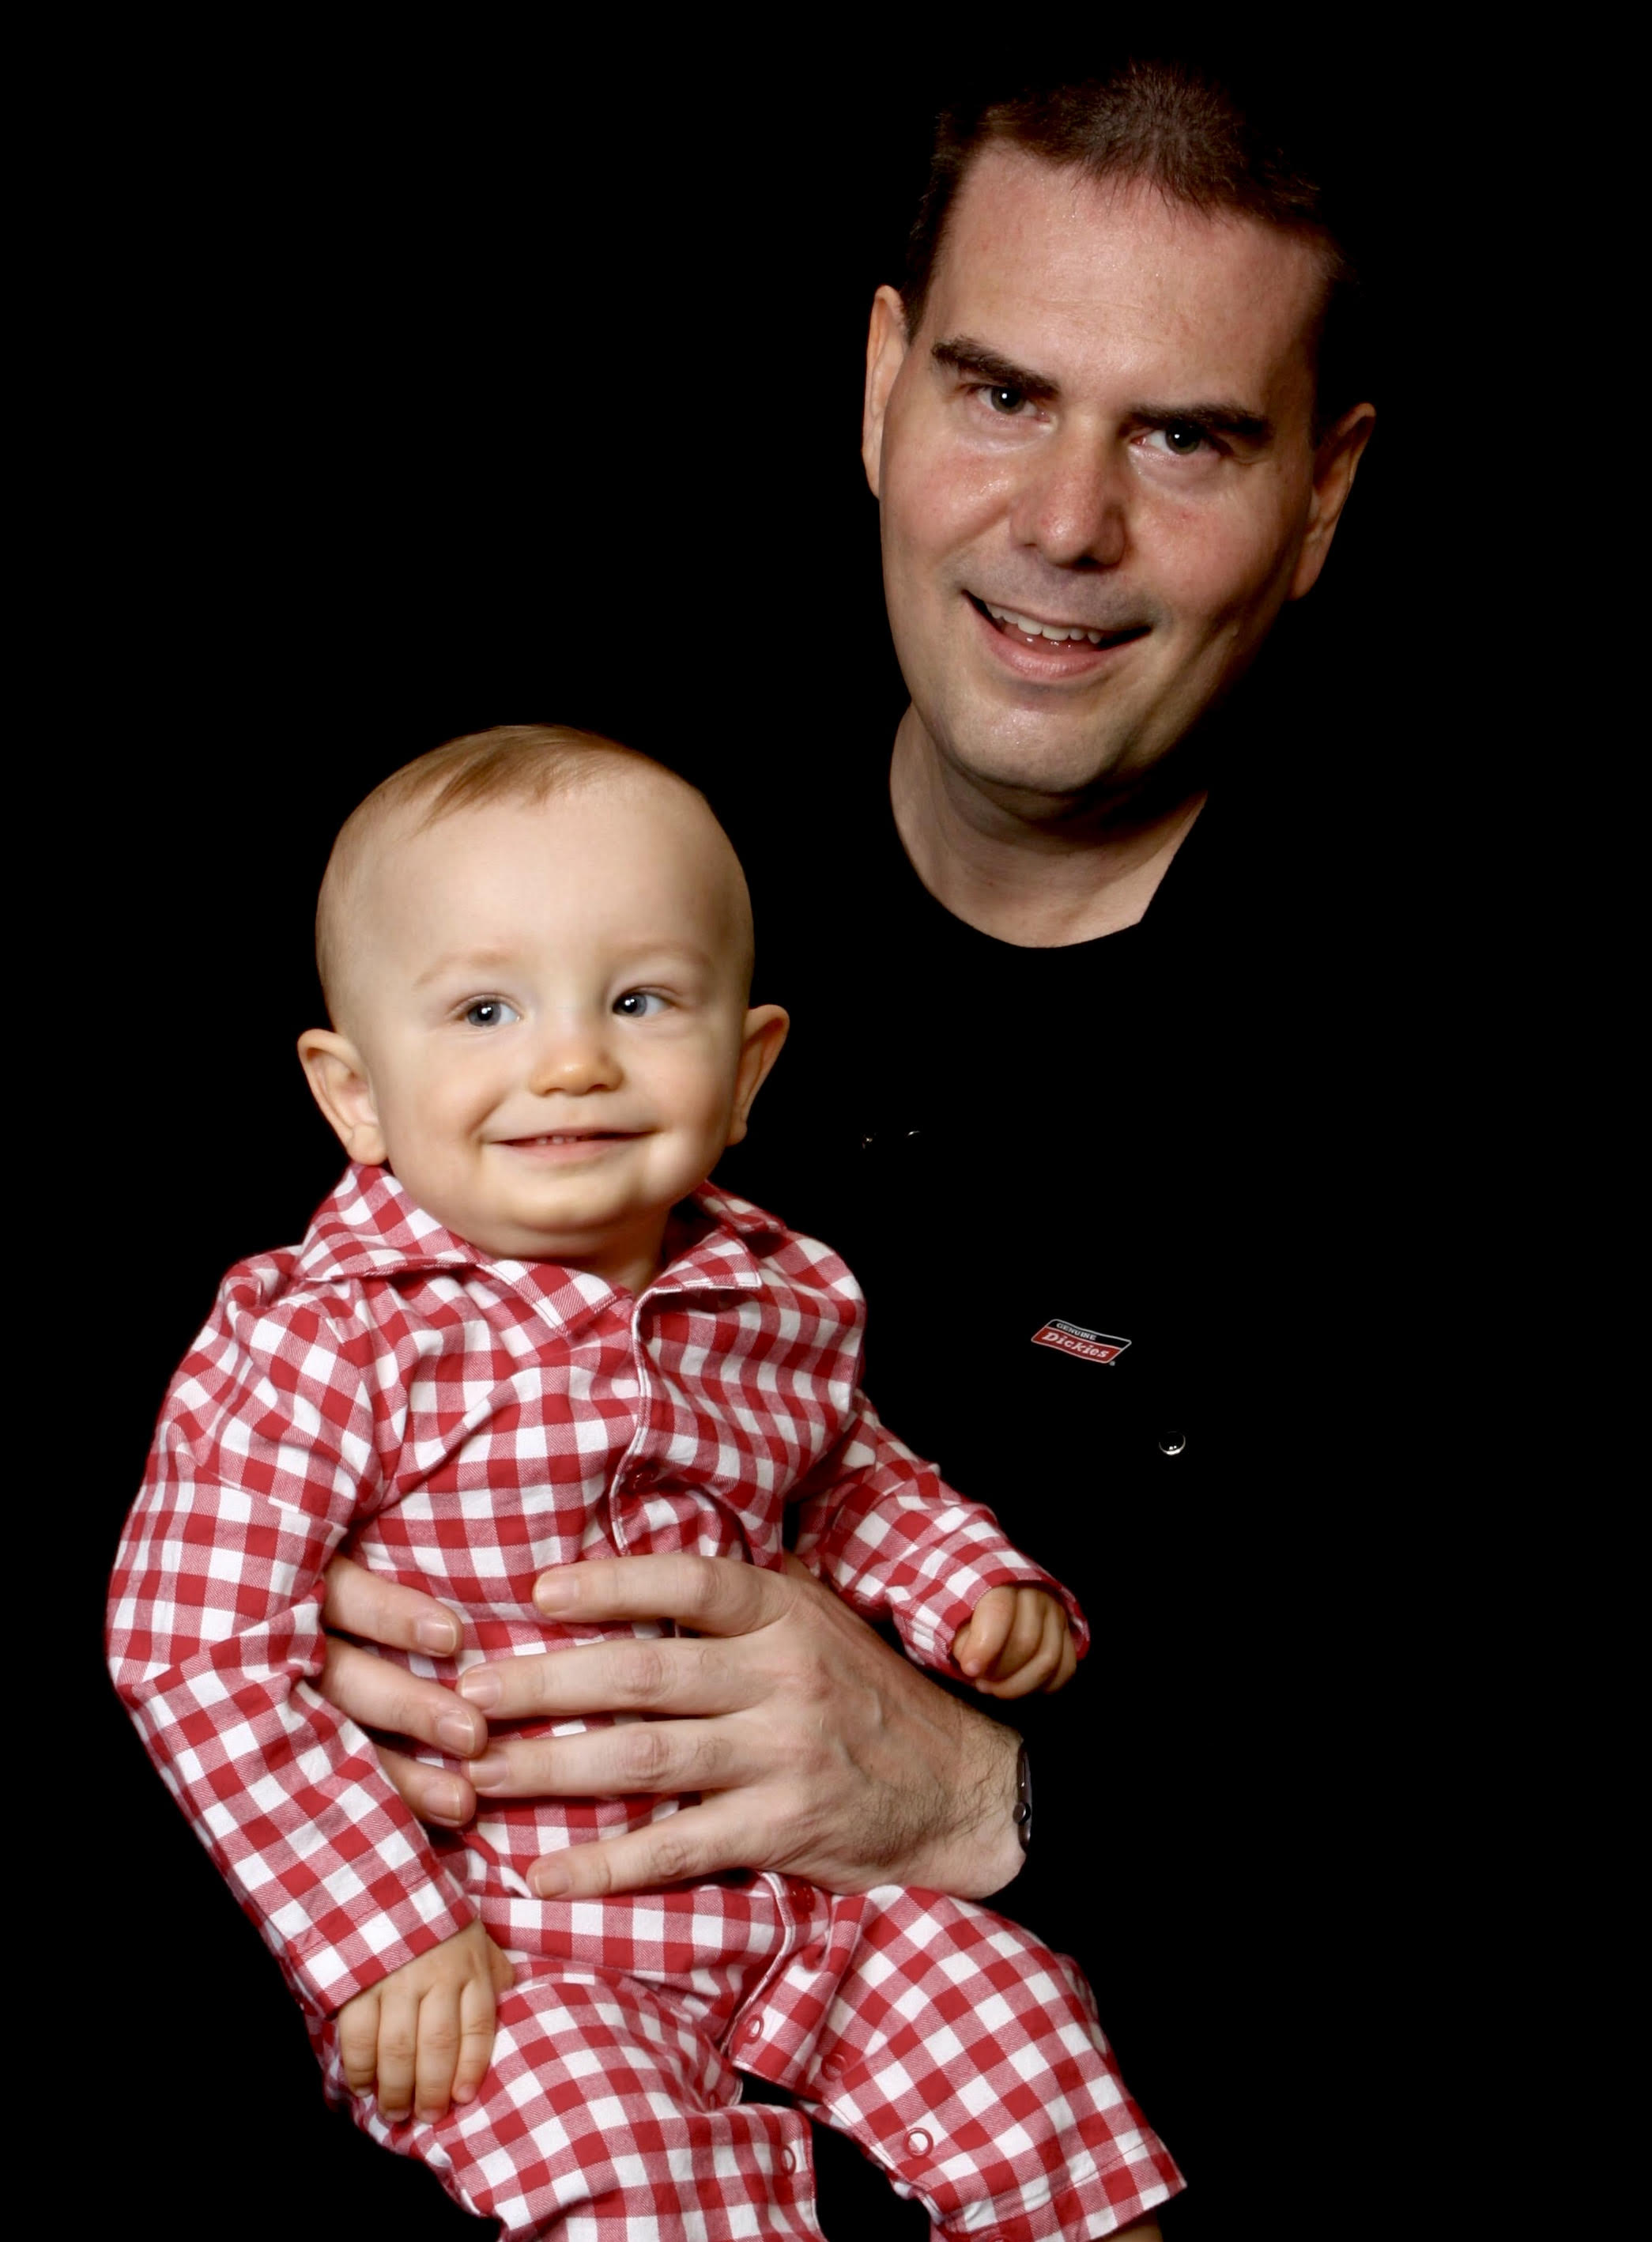 A Canadian Single Dad Says He Was Harassed For Taking Paternity Leave In